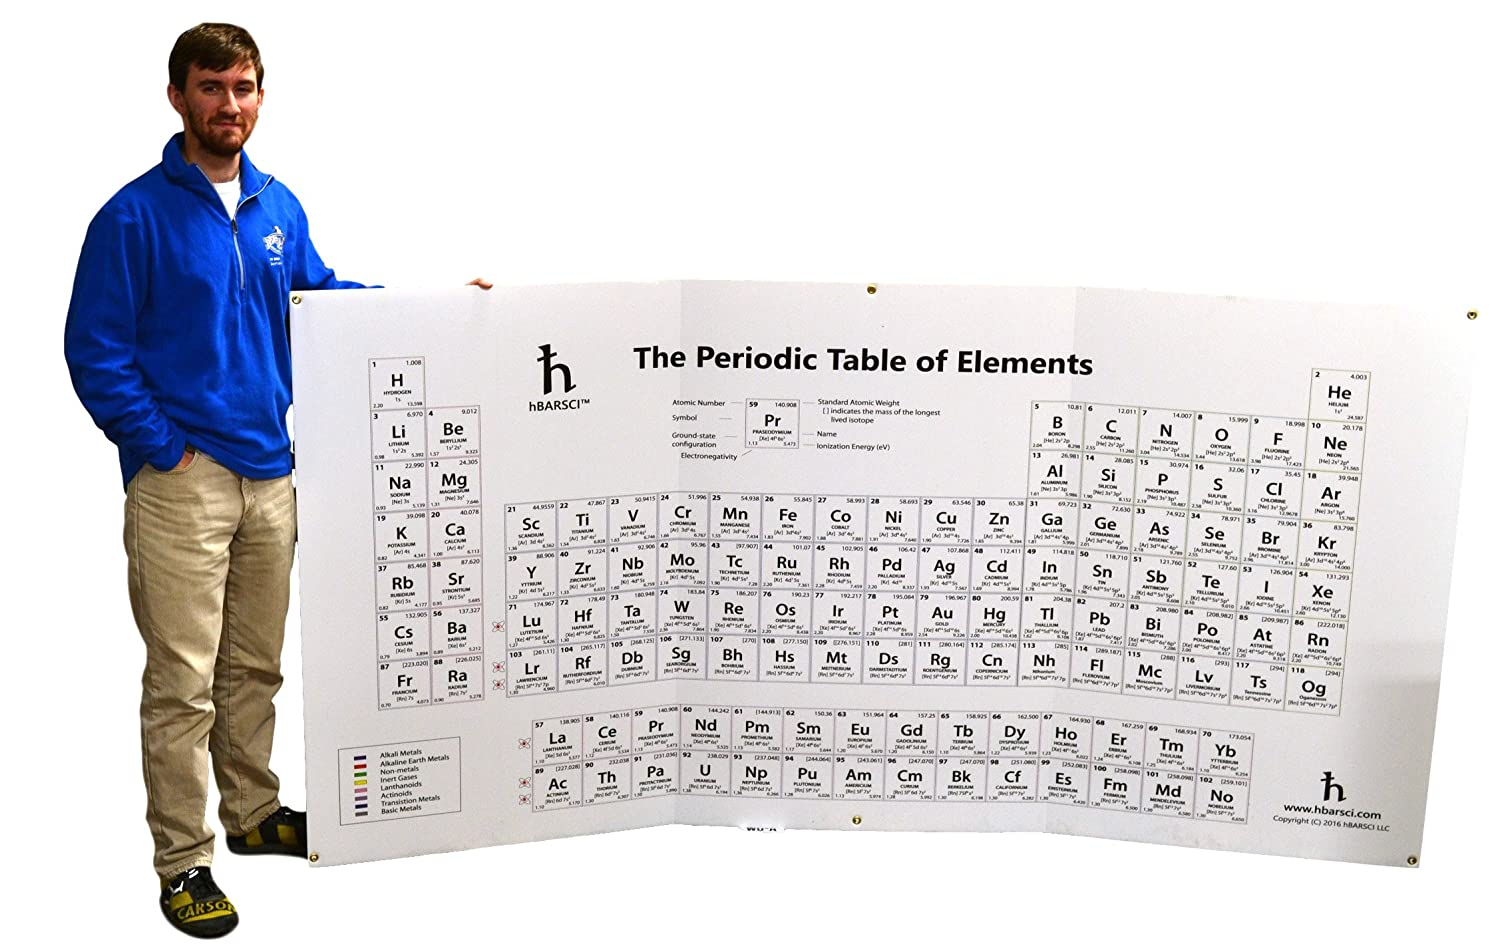 Large Periodic Table Chart (8'x4'), Containing New Elements Discovered Summer 2016 - Corrugated Plastic Board hBARSCI